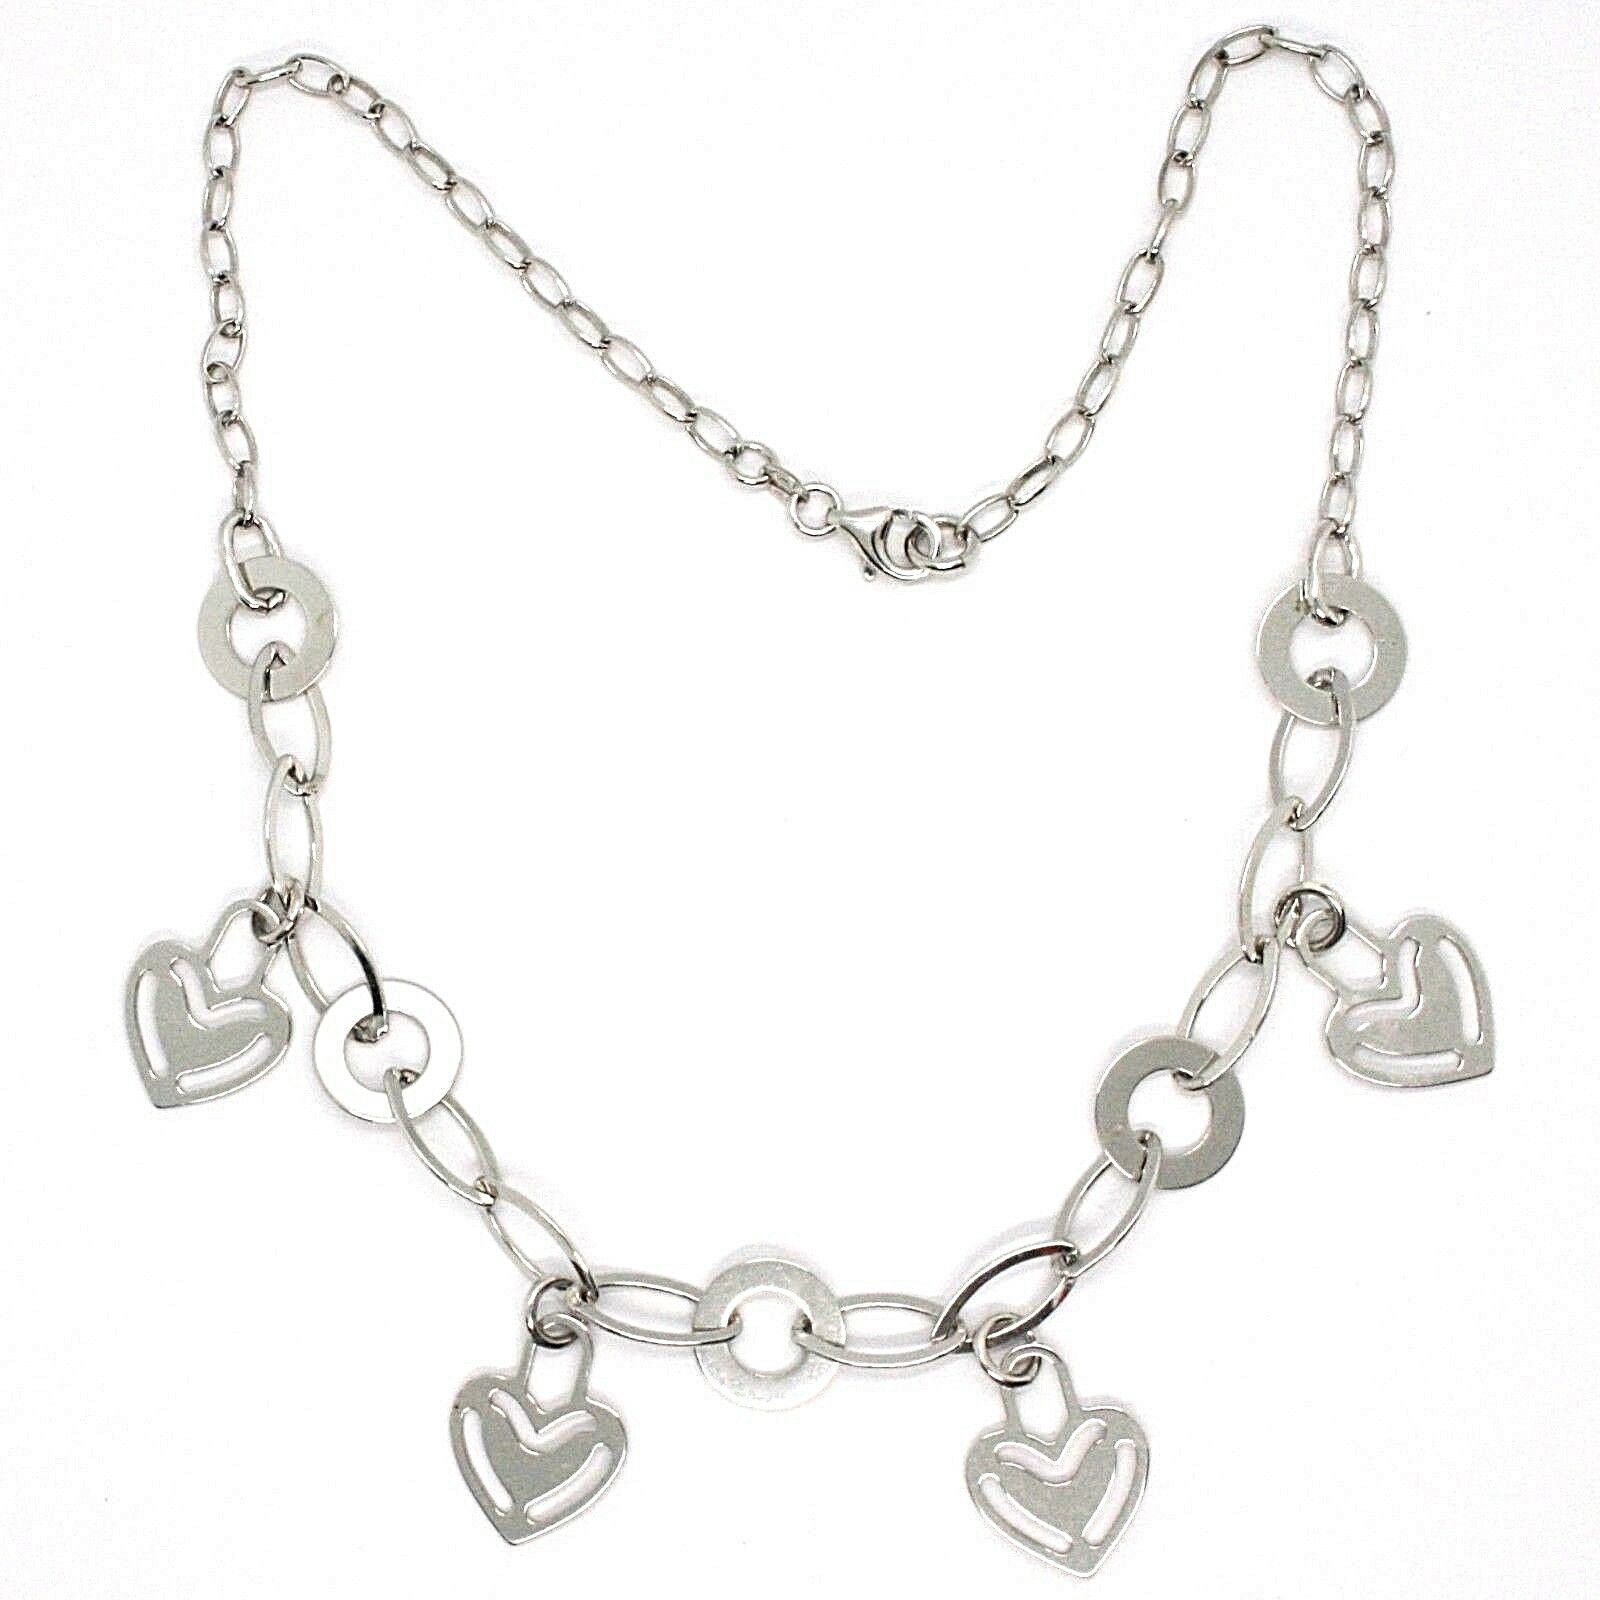 Necklace Silver 925, Chain Oval, Waterfall, Hearts Plates Hanging, Heart